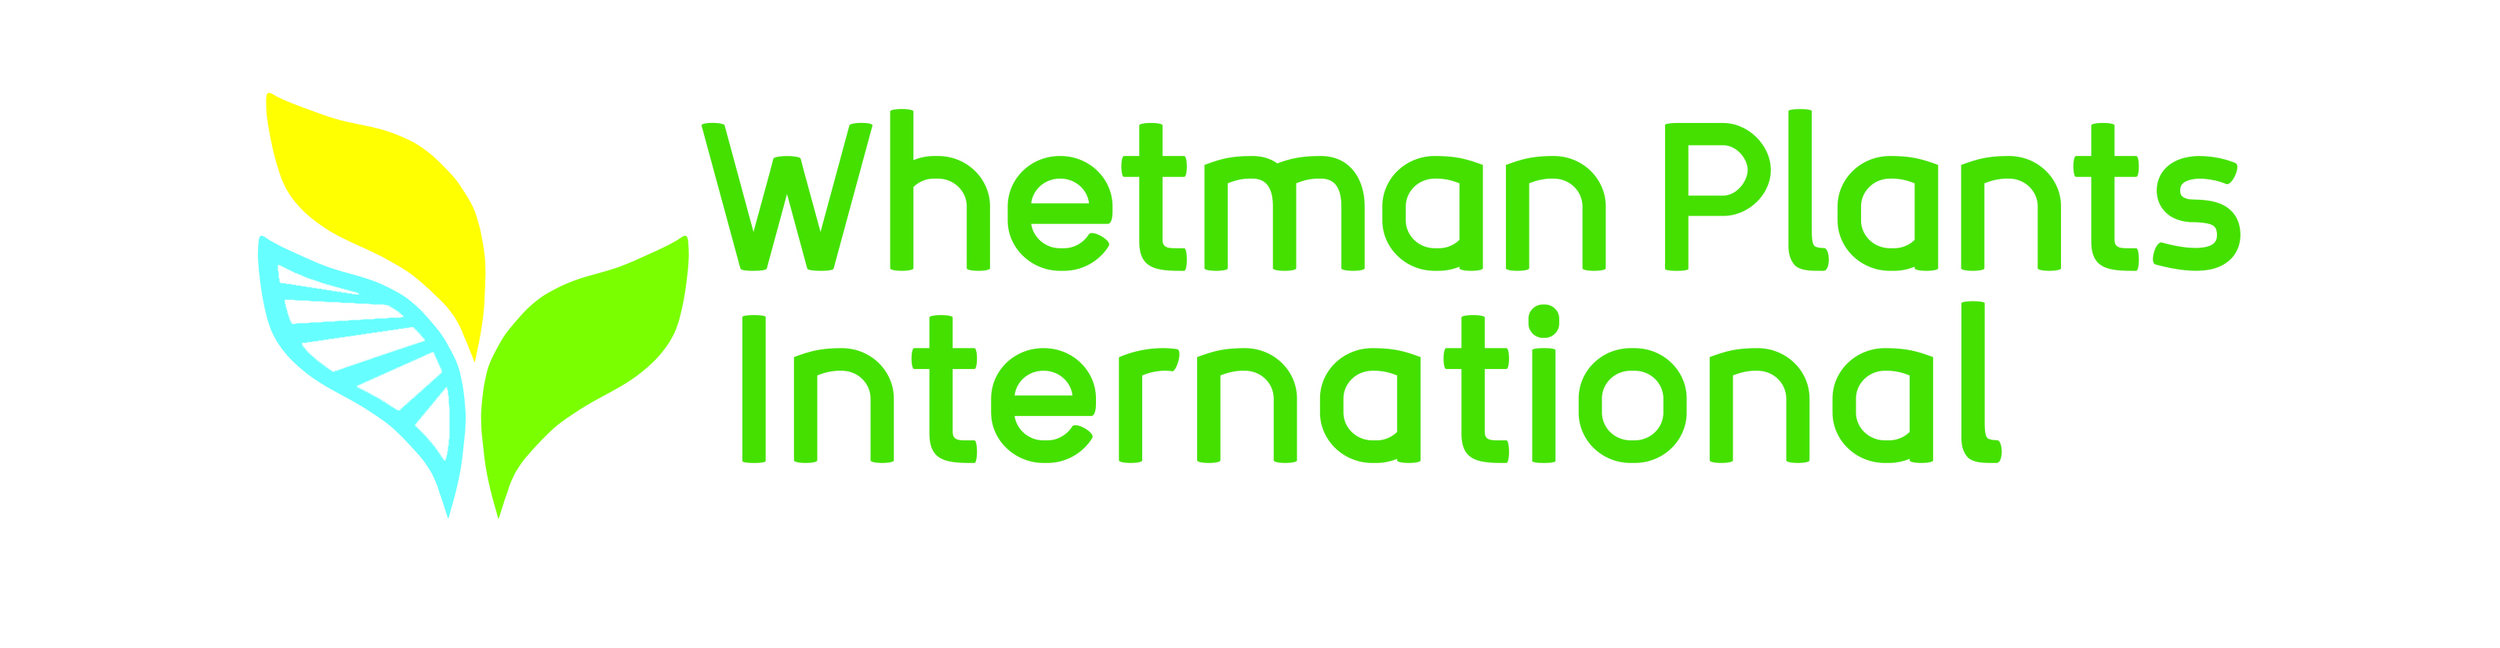 Whetman - Logo.jpg